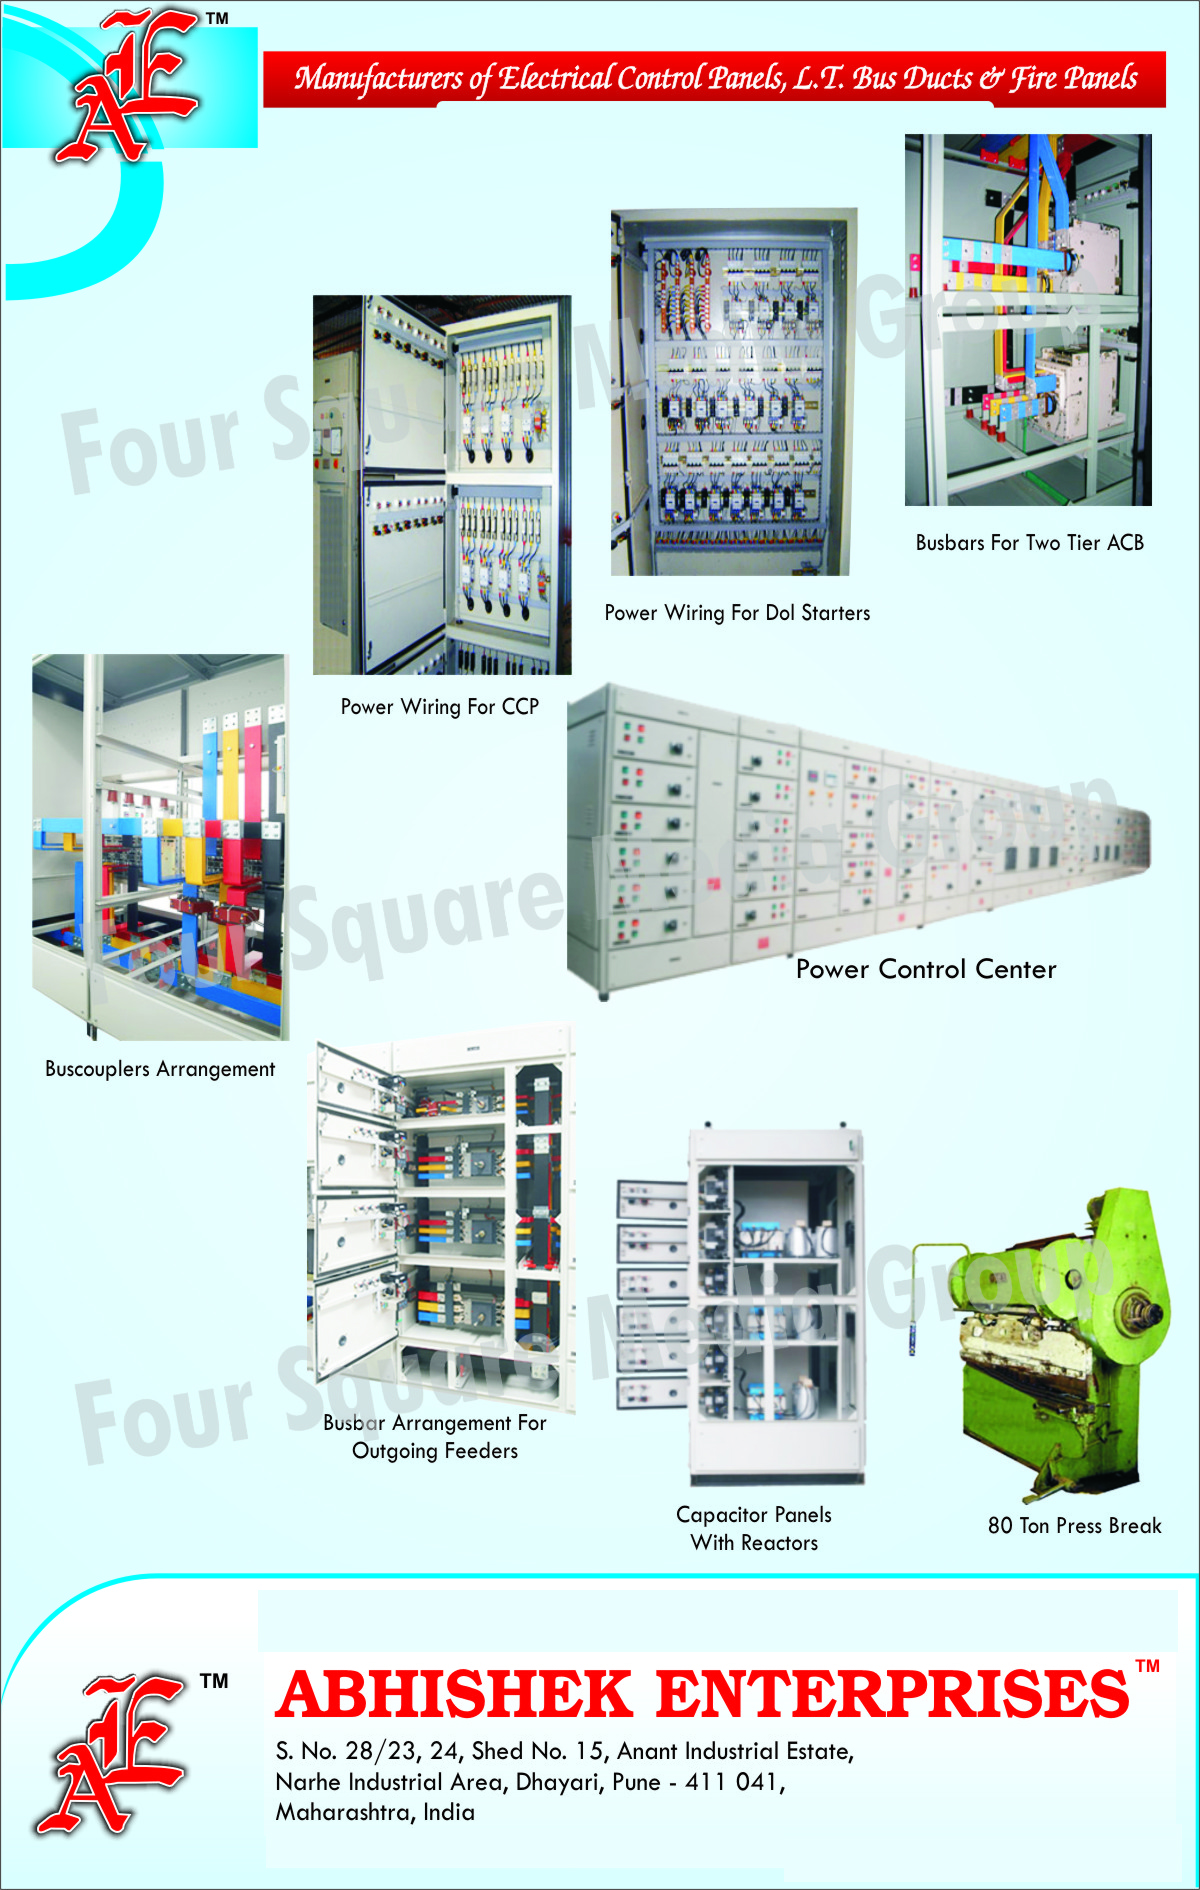 Electrical Control Panels, Fire Panels, LT Panels, LT Bus Ducts, CCP Power Wirings, DOL Starter Power Wirings, Two Tier ACB Busbars, Buscoupler Arrangements, Power Control Centers, Capacitor Panels With Reactors, Press Break, Outgoing Feeder Busbar Arrangements